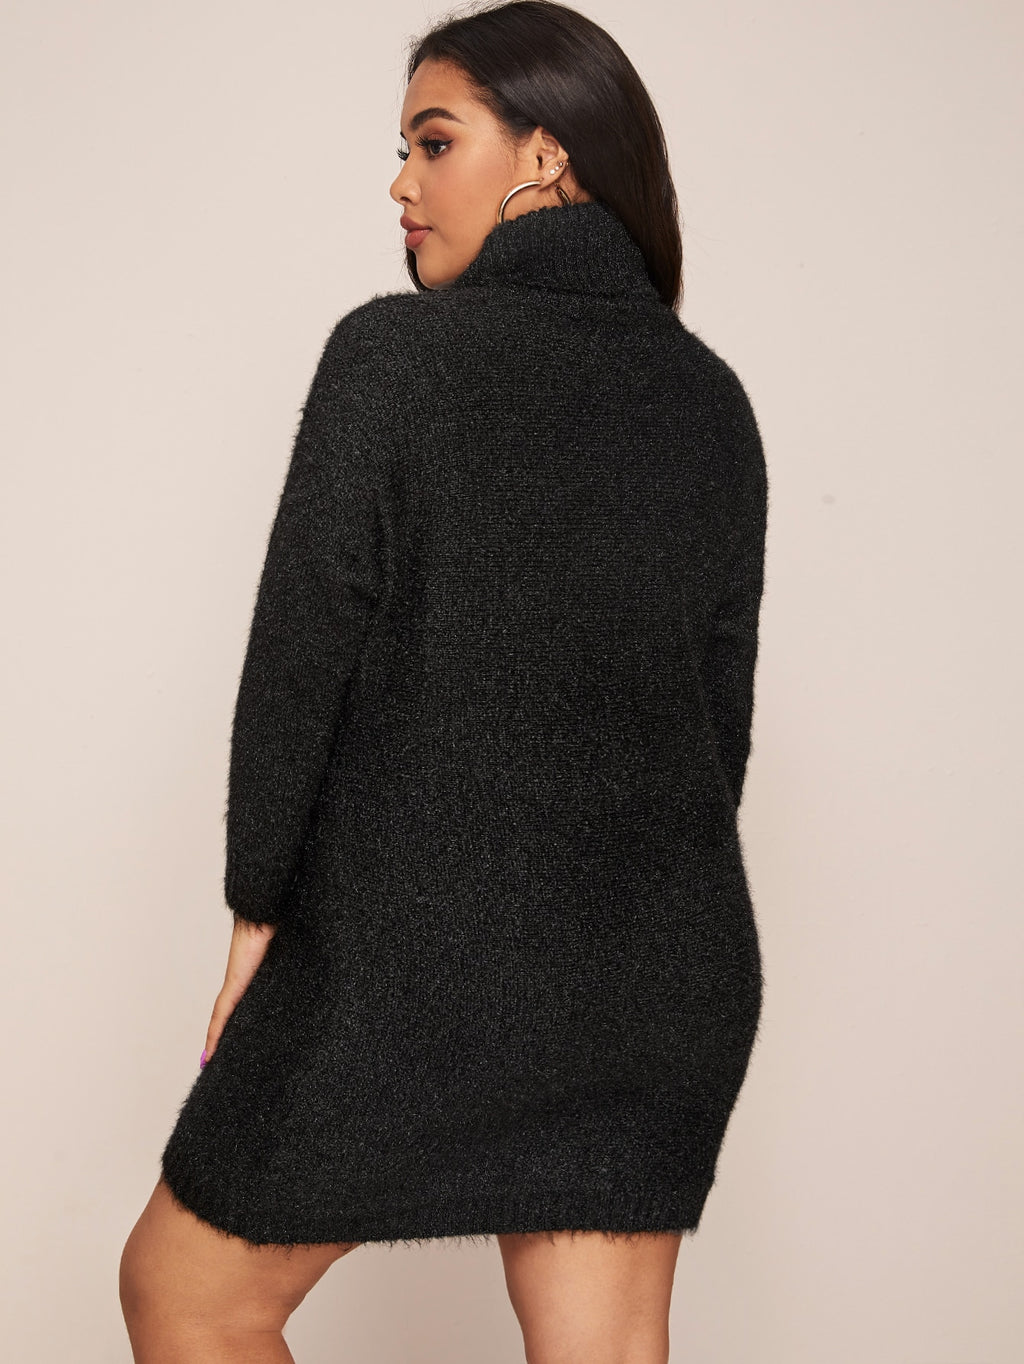 Plus Size Fuzzy Turtle Neck Sweater Dress Without Belt